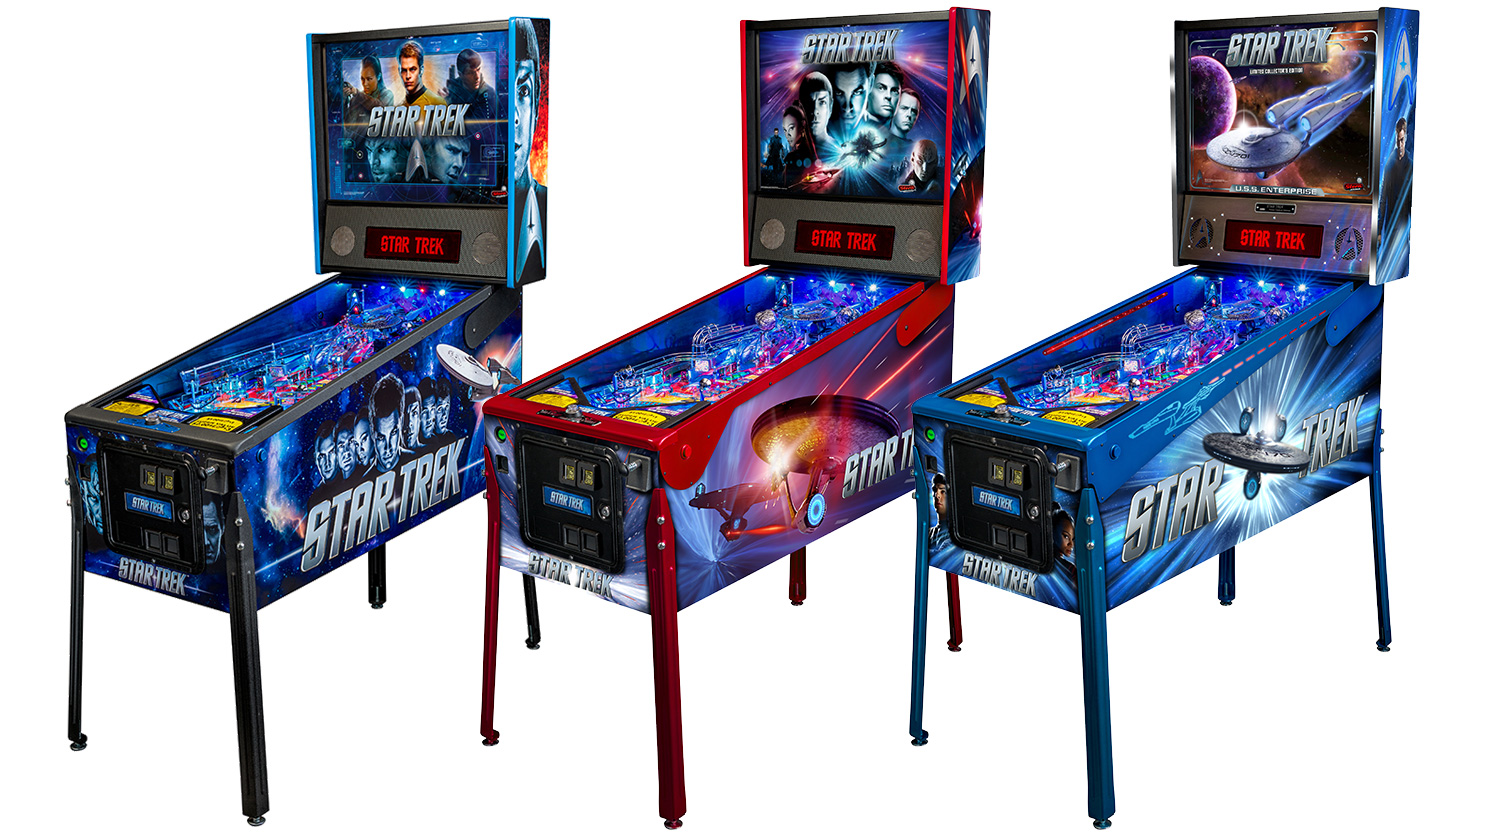 star trek pinball machine 2013